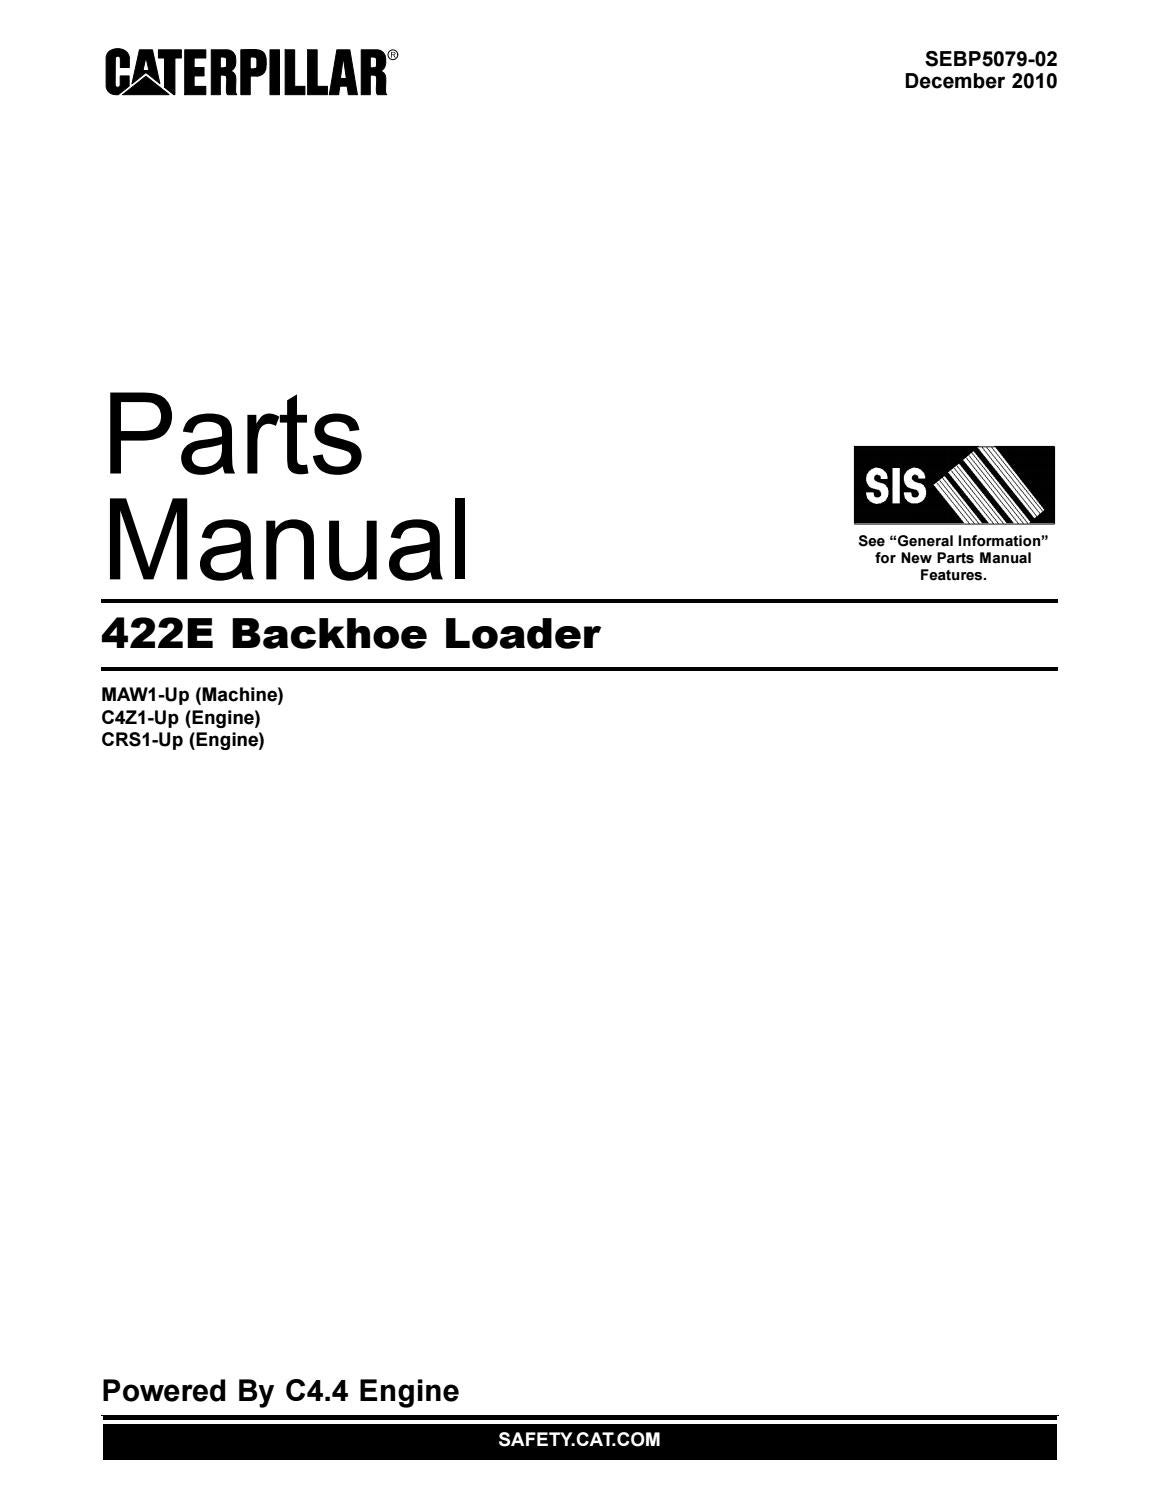 parts manual 422e backhoe loader by ahmadfikry work issuu 3406E Troubleshooting Cat 3406E Specifications